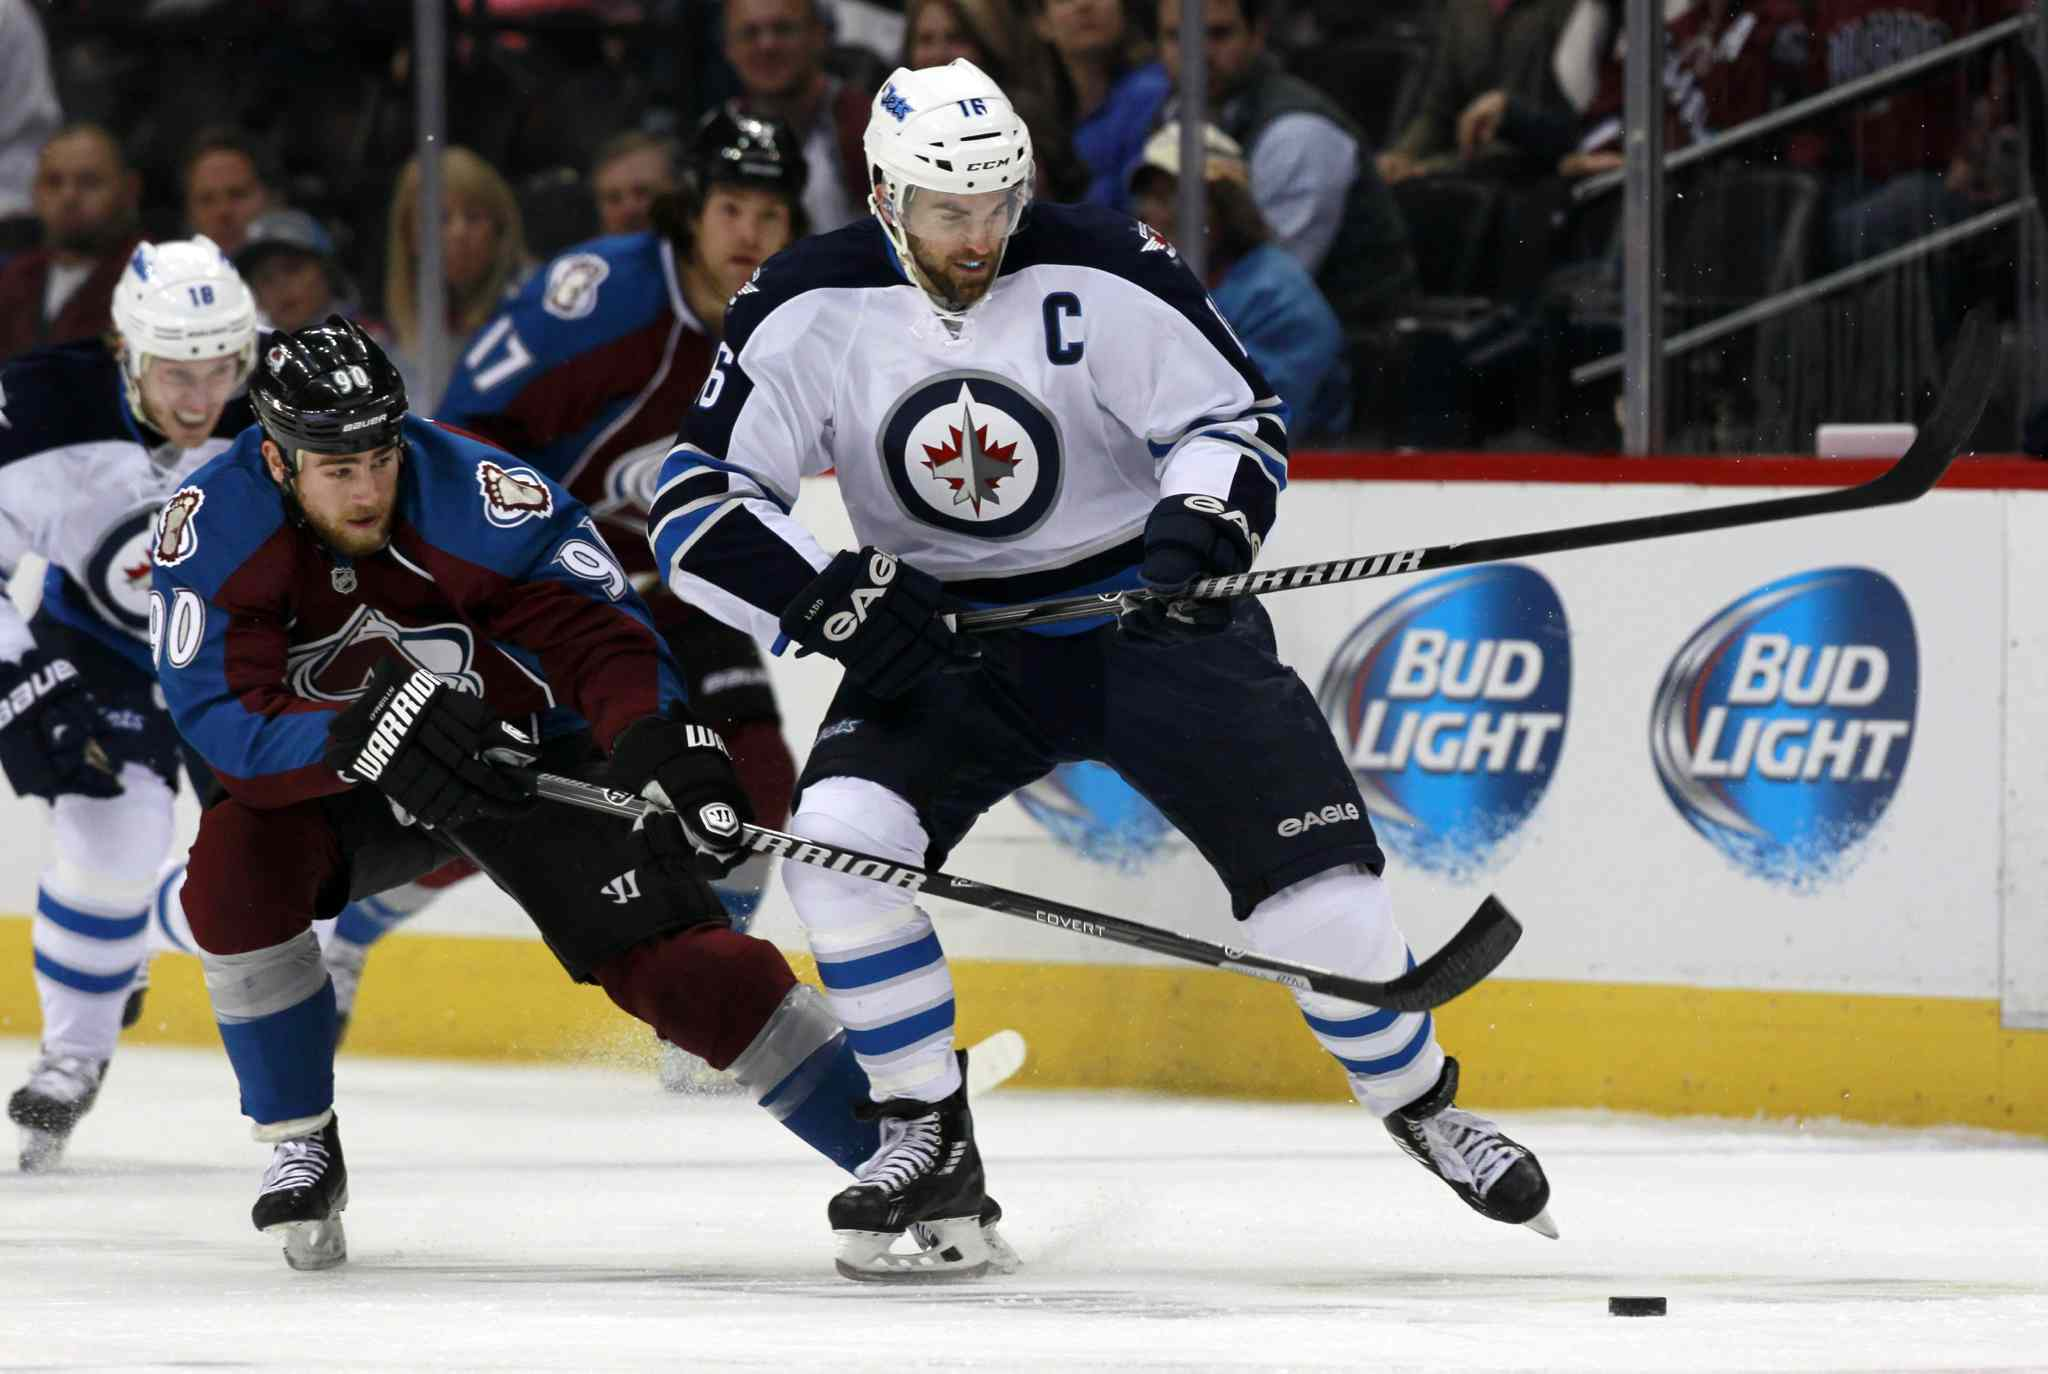 Andrew Ladd (right) is hooked by Colorado Avalanche centre Ryan O'Reilly while reaching for the puck in the first period.